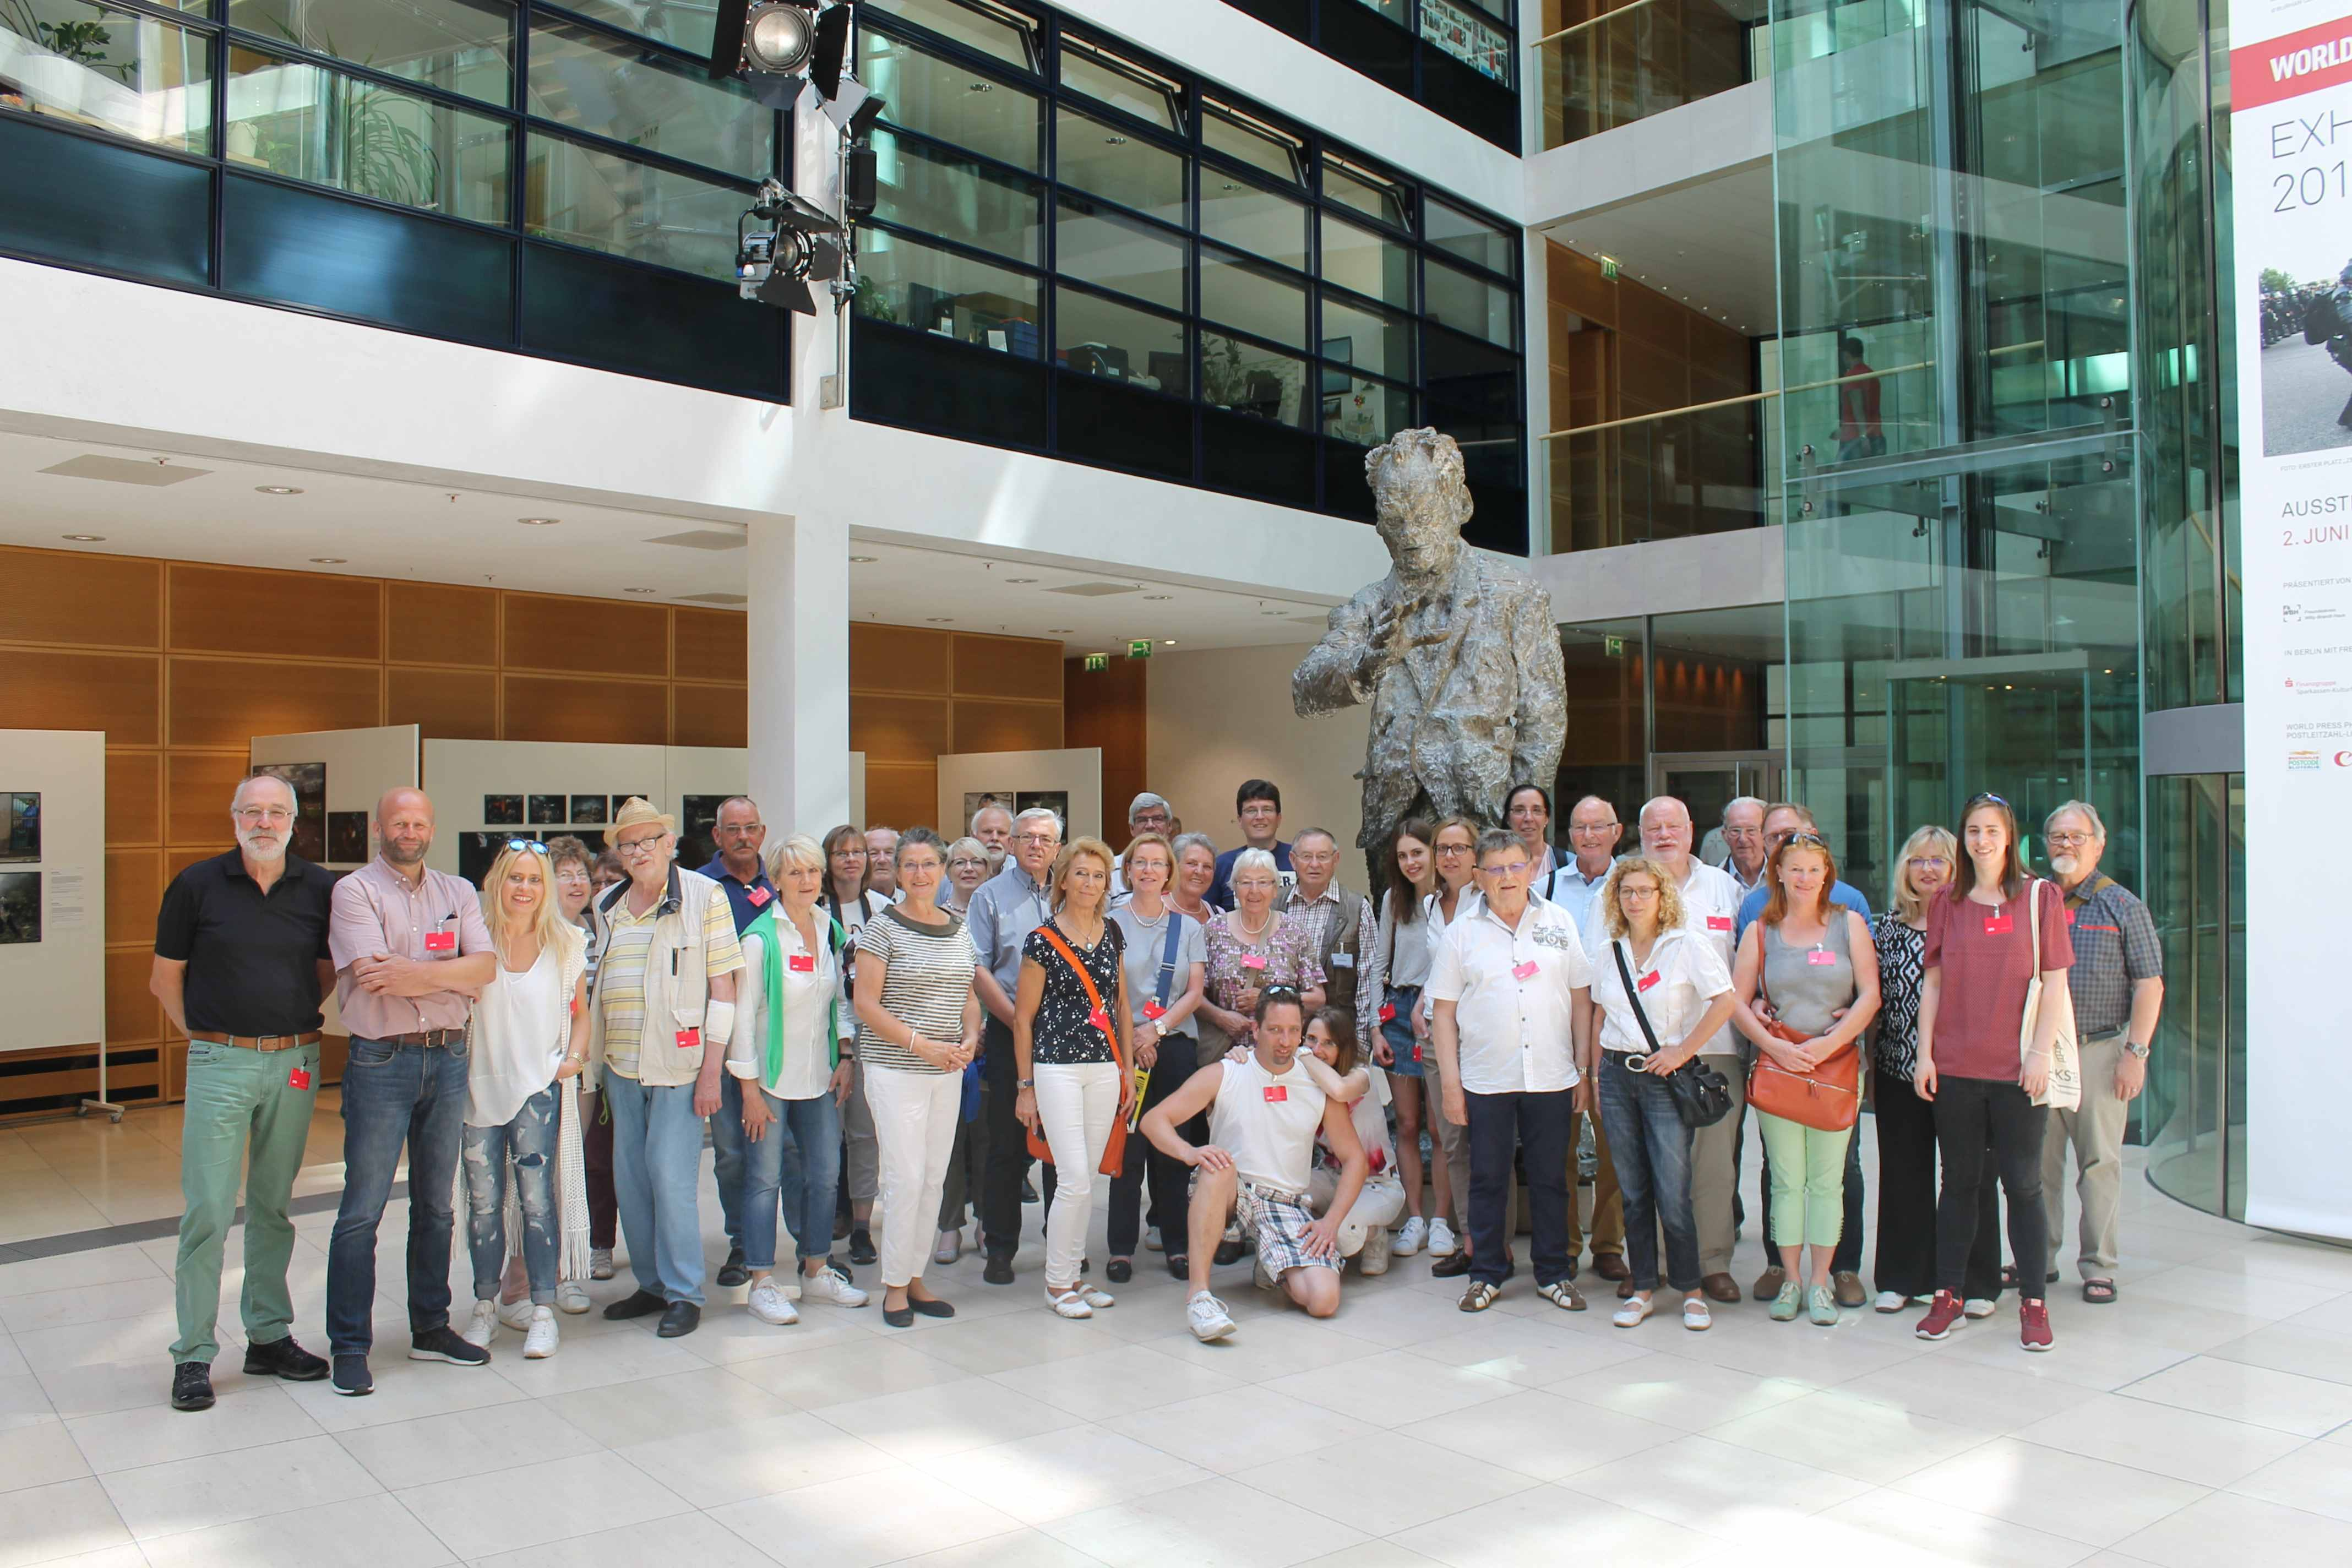 20170602 Berlin Gruppe Willy Brandt Haus WEB